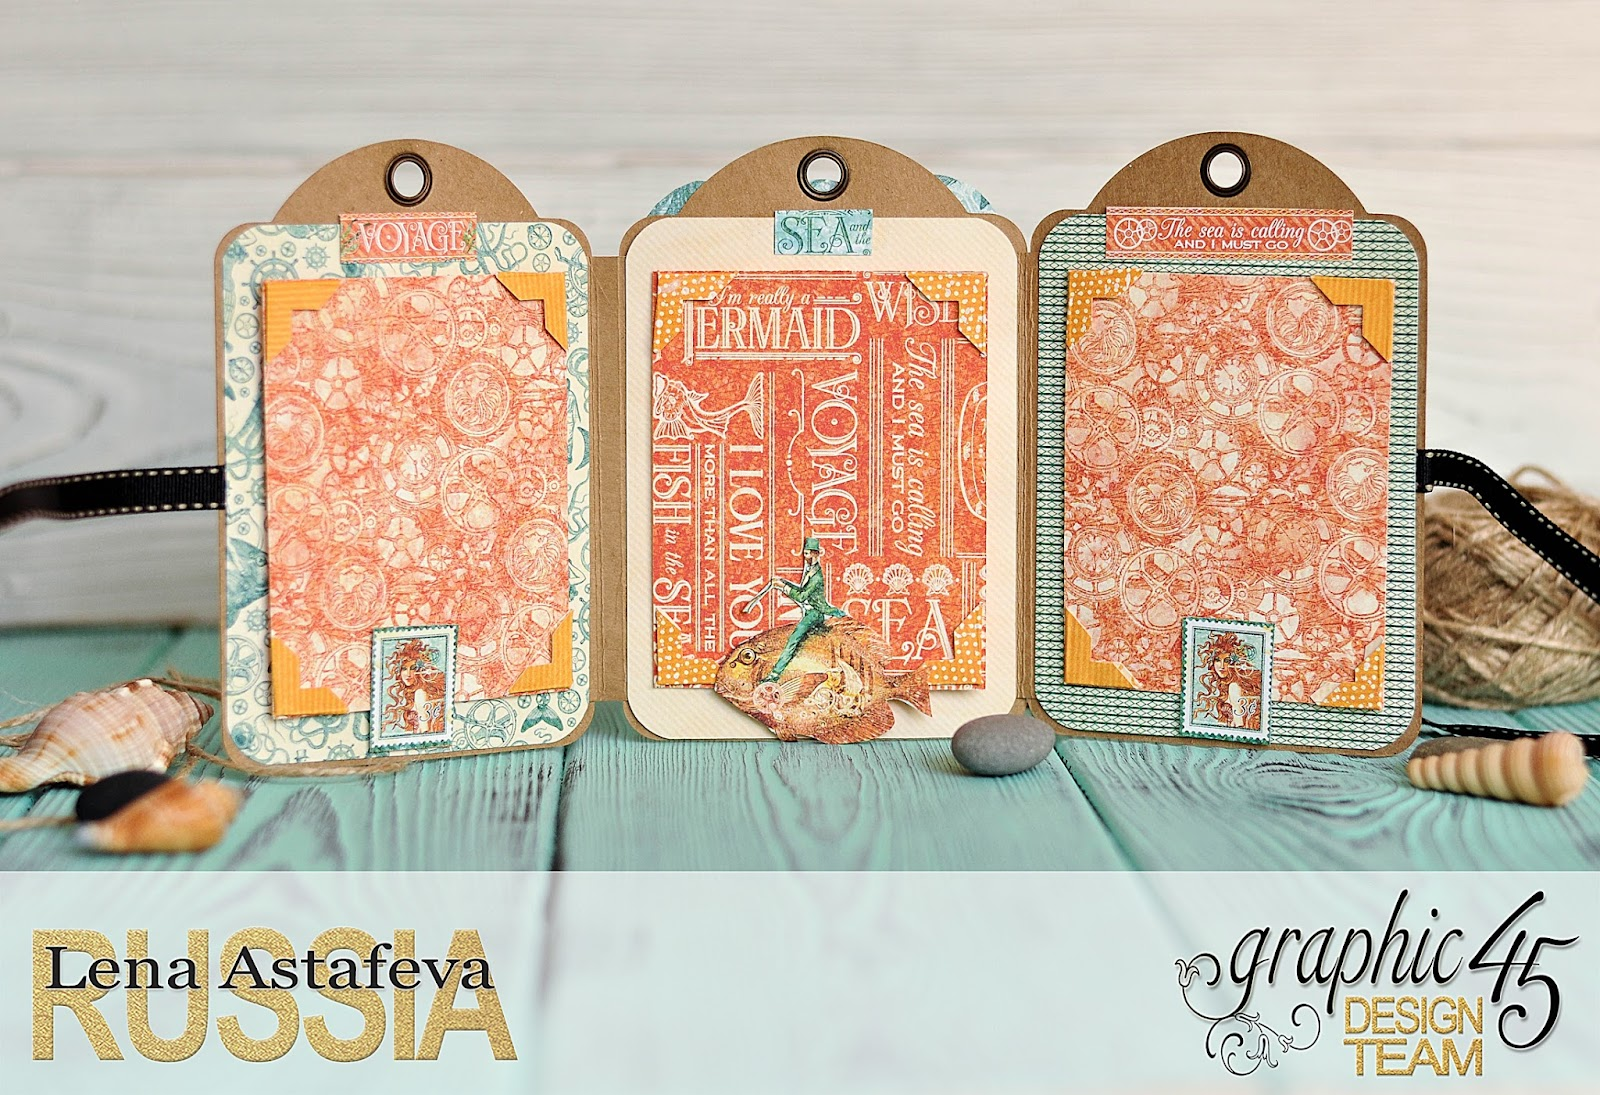 Tags-tutorial by Lena Astafeva-products by Graphic 45-52.jpg